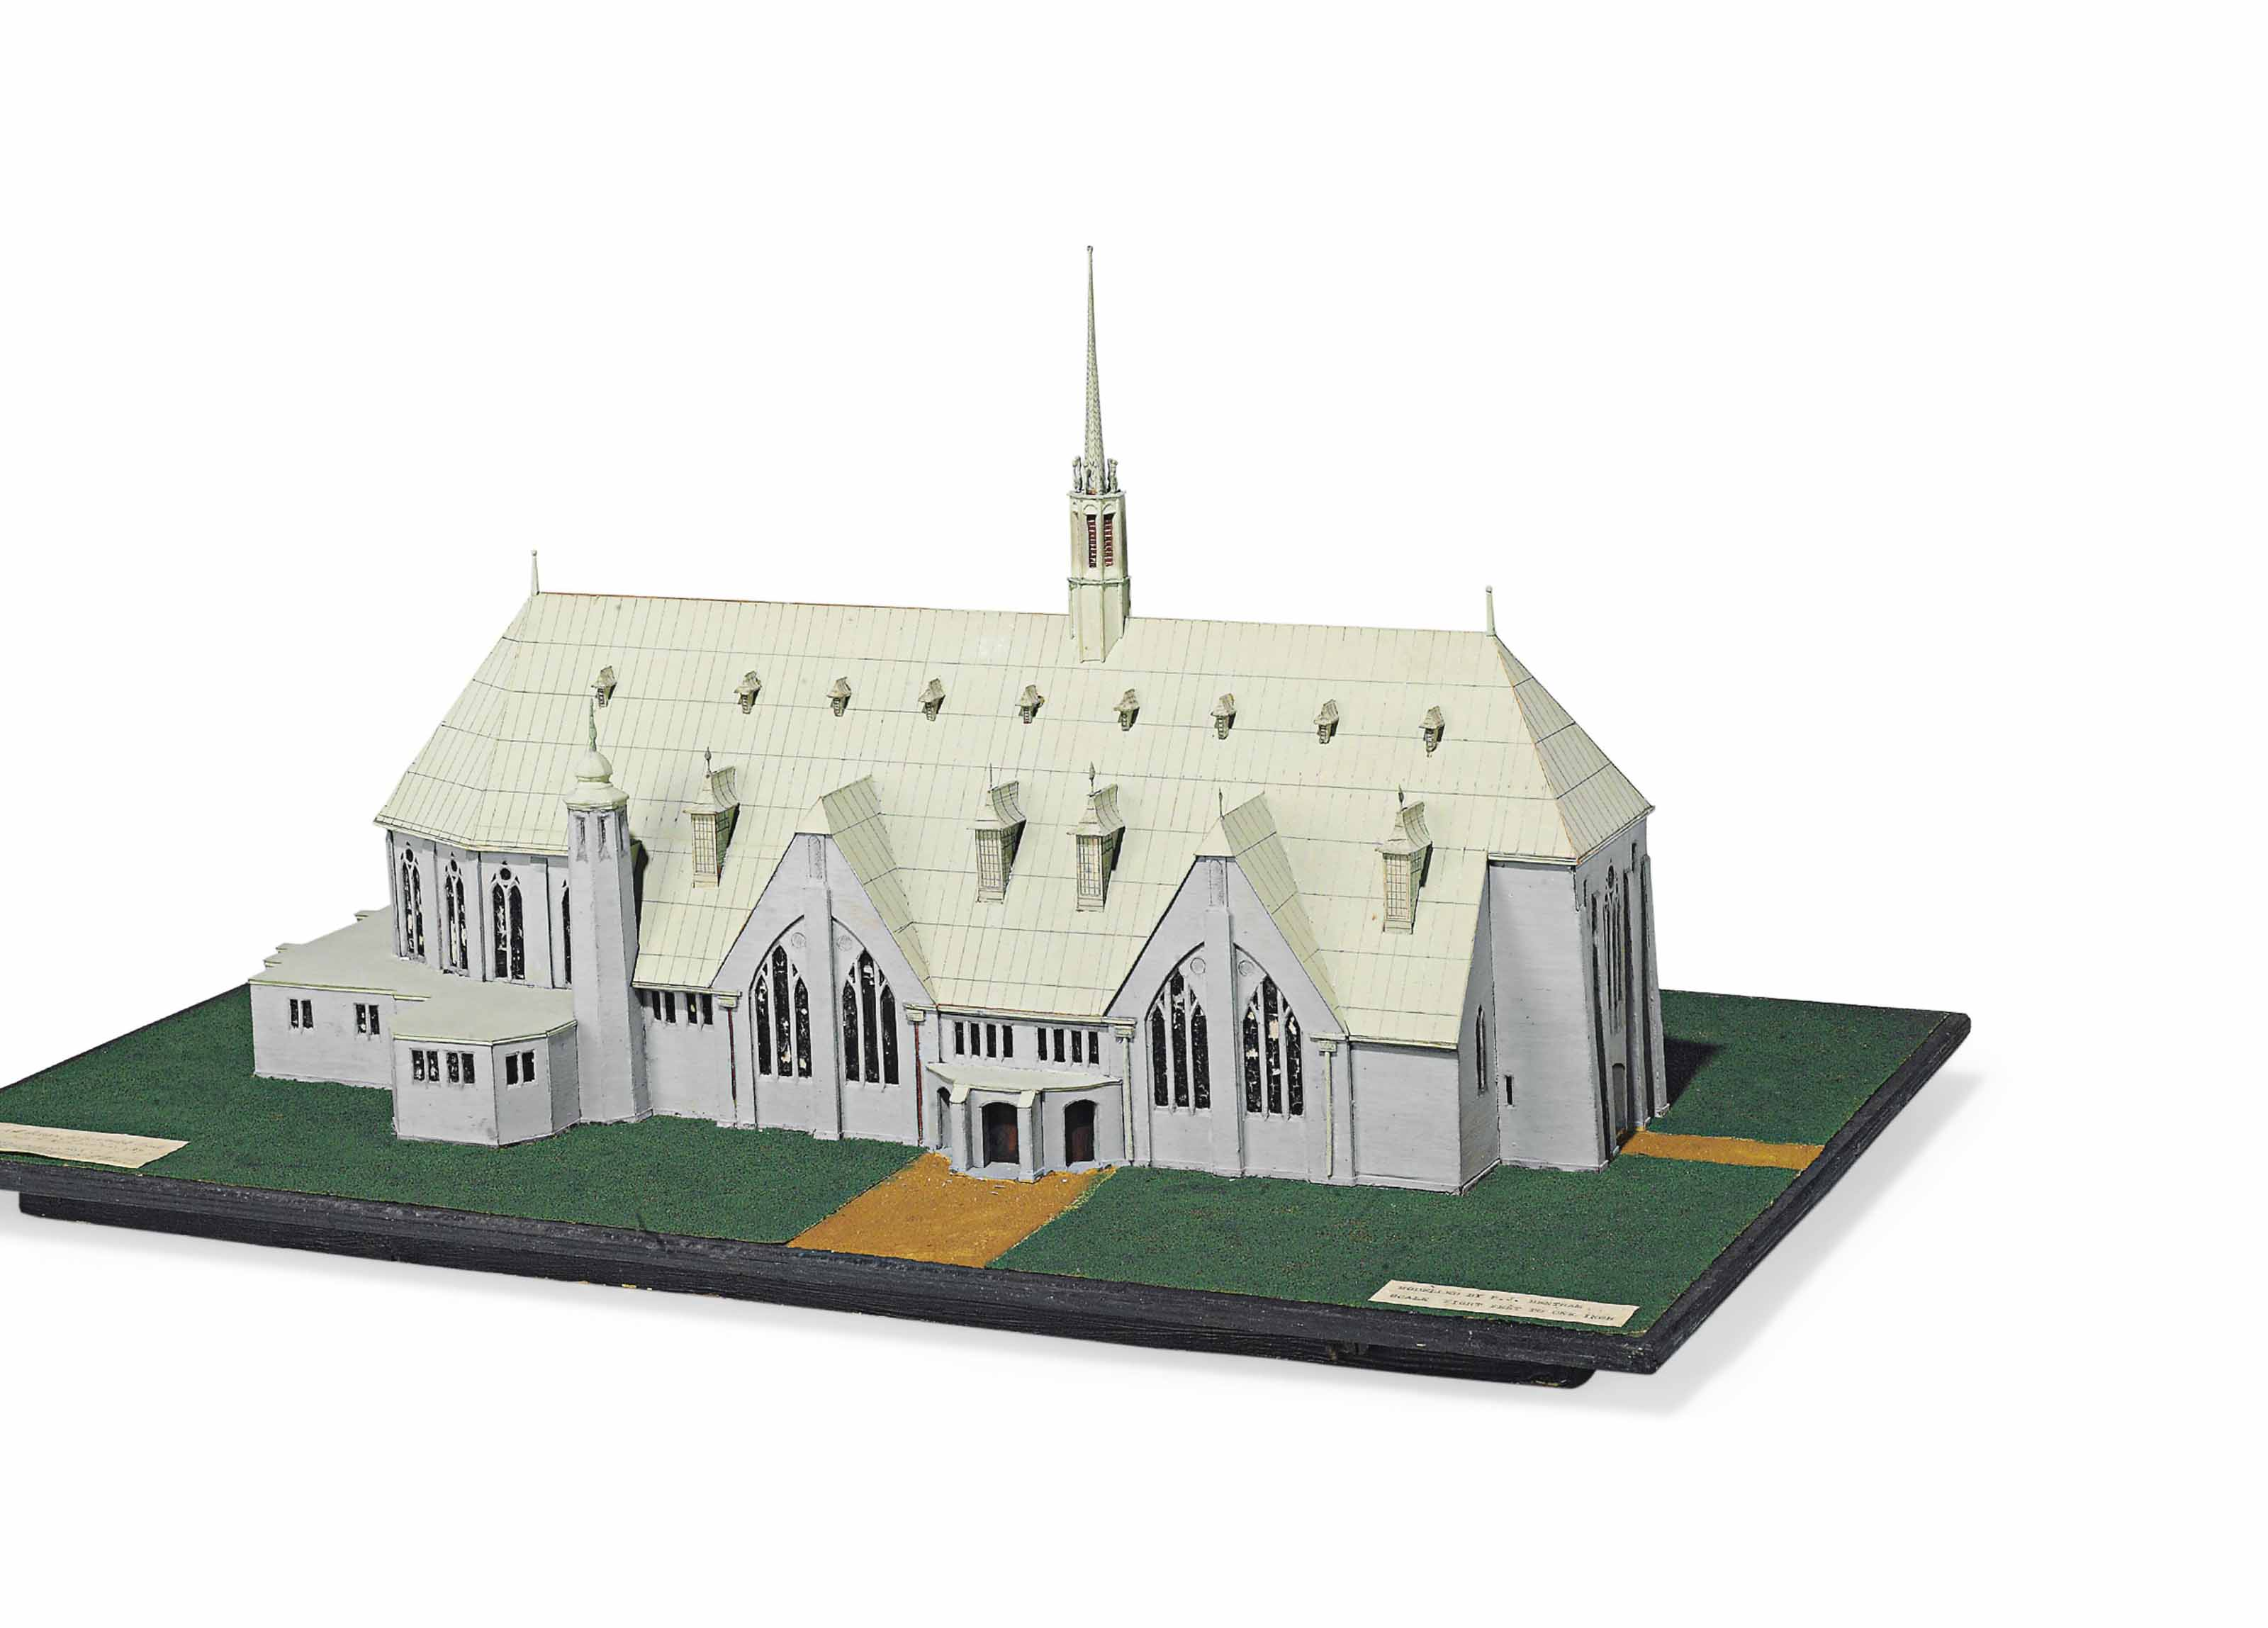 AN ARCHITECTURAL MODEL OF A PROPOSED DESIGN FOR GREENFORD CHURCH, MIDDLESEX